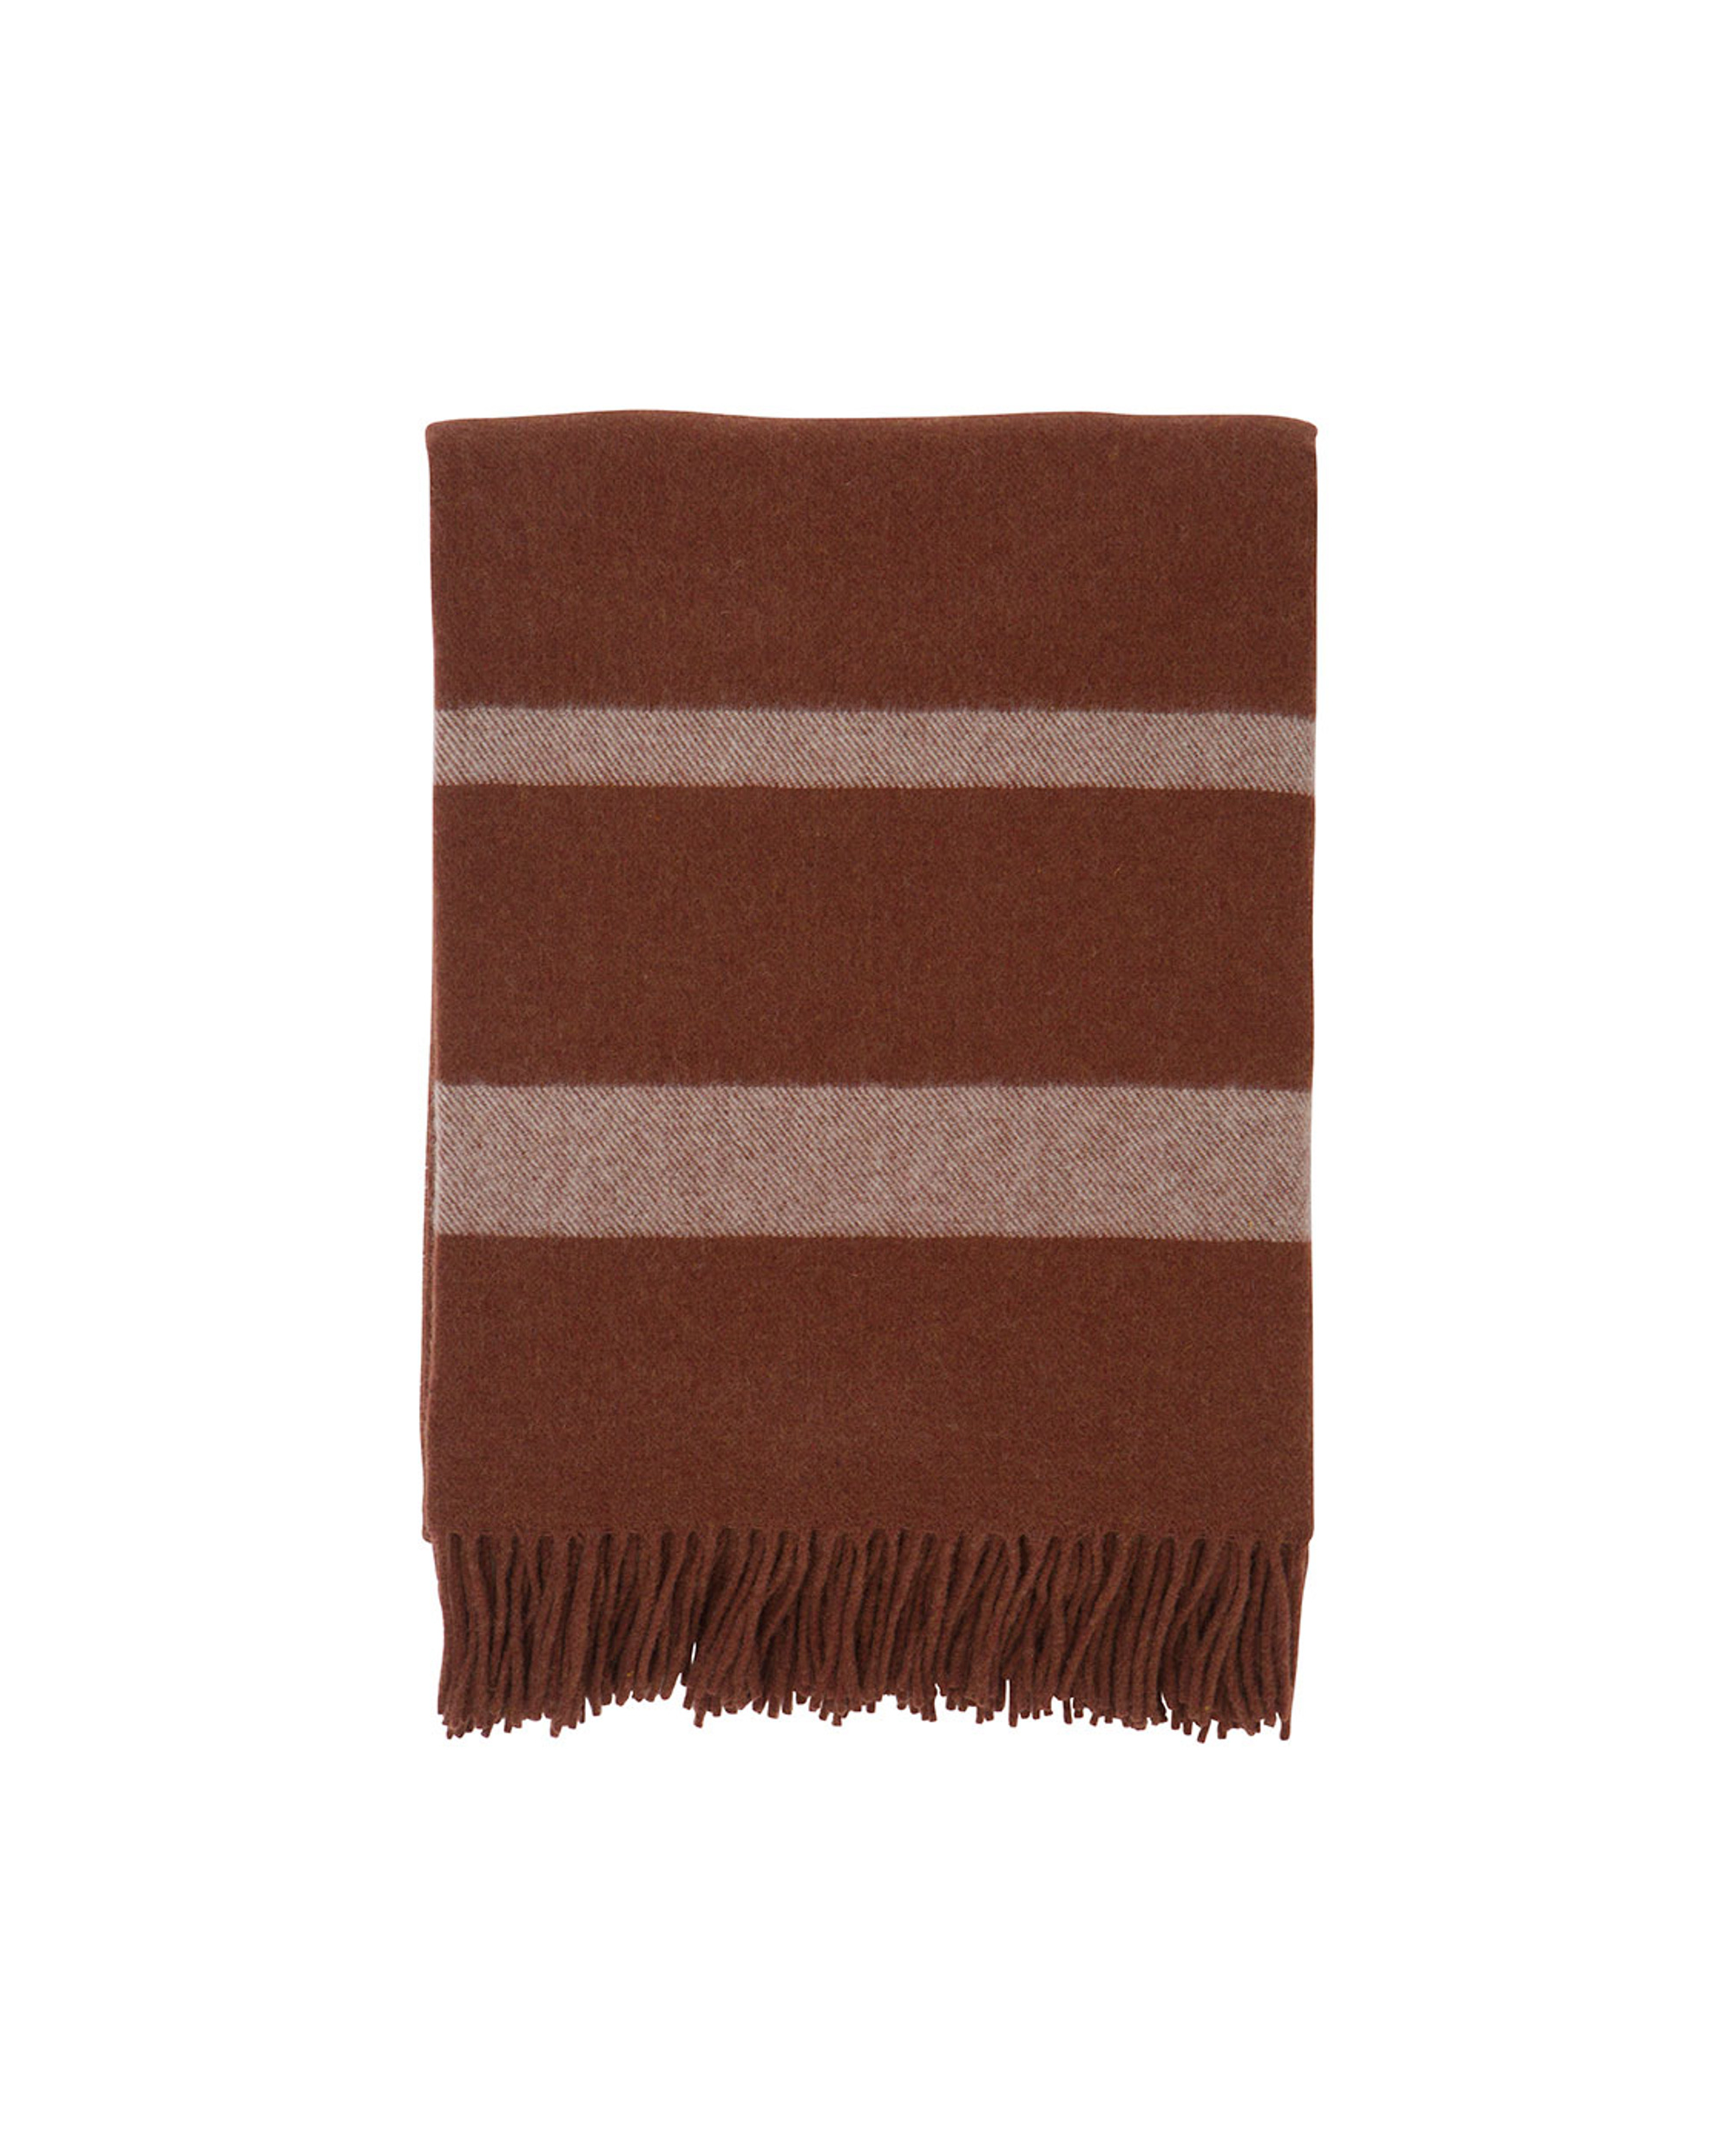 Hotel Wool Throw, Chestnut/White